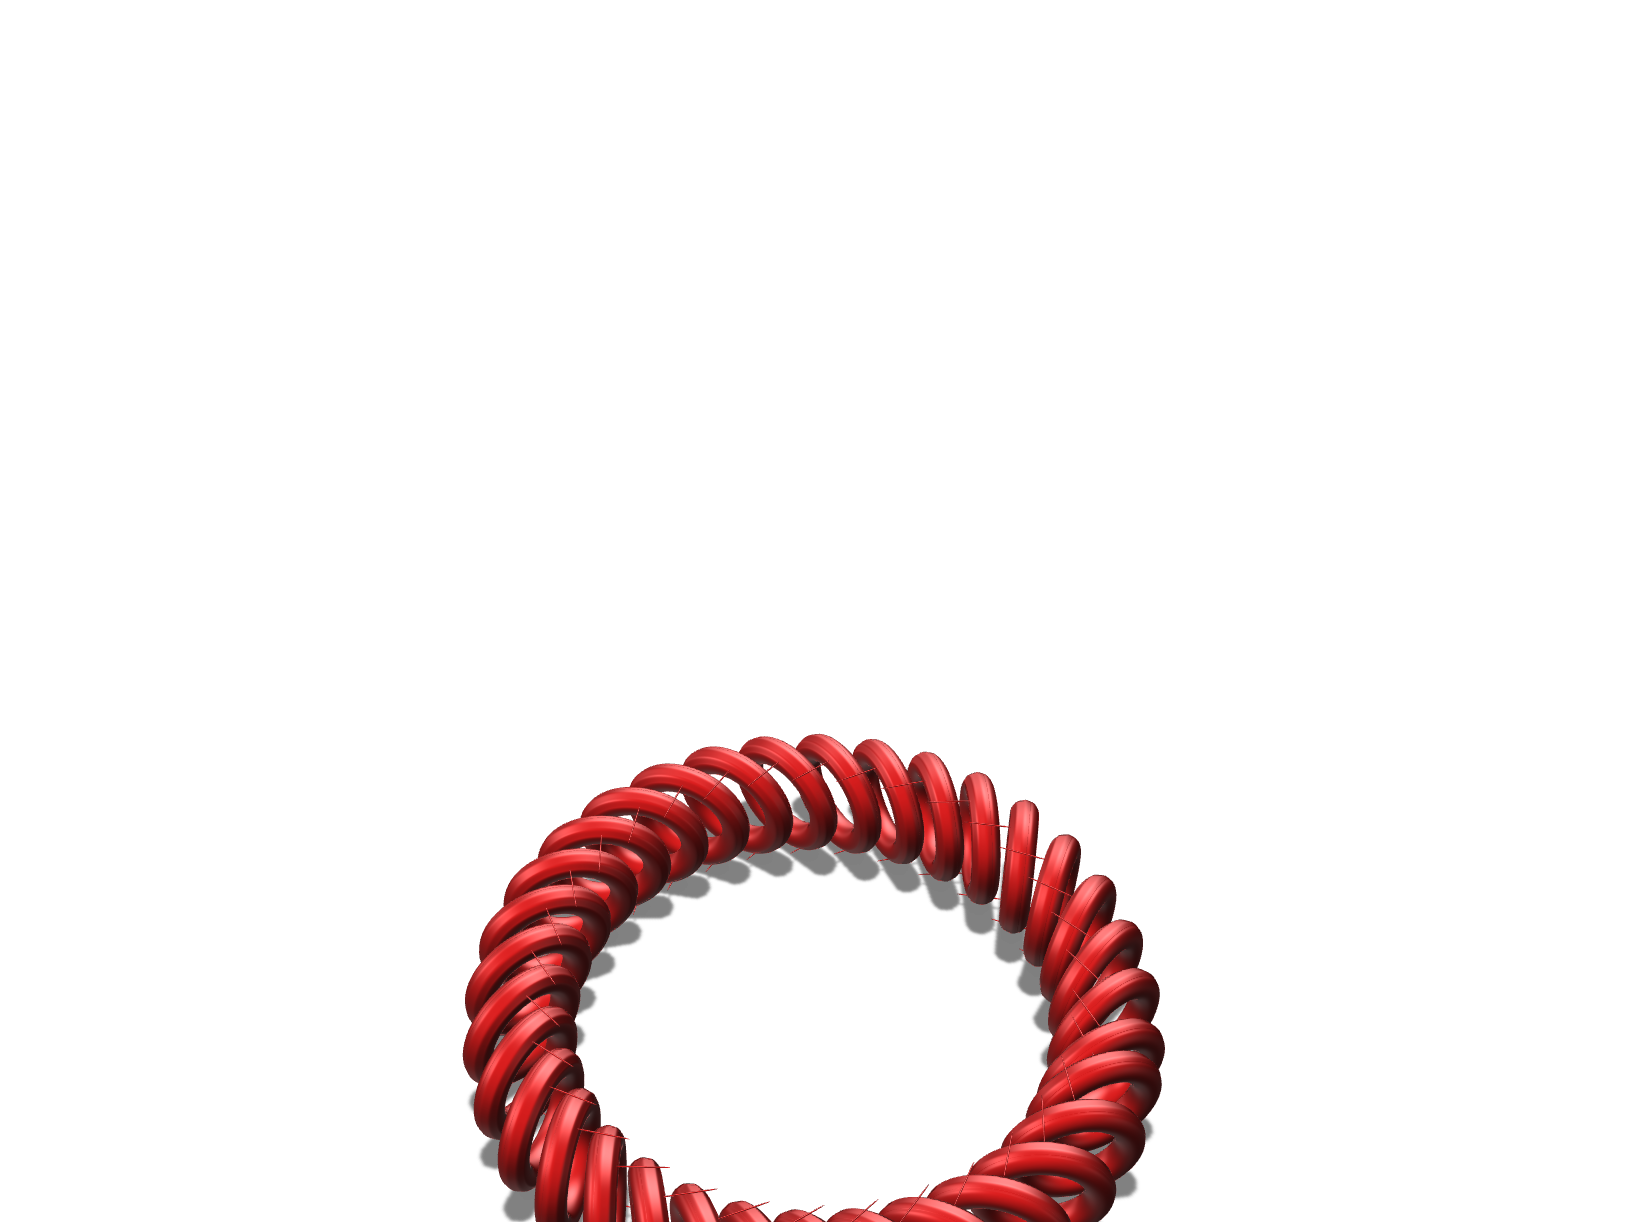 ring/bracelet - 3D design by rajatsethi7 on Apr 29, 2018